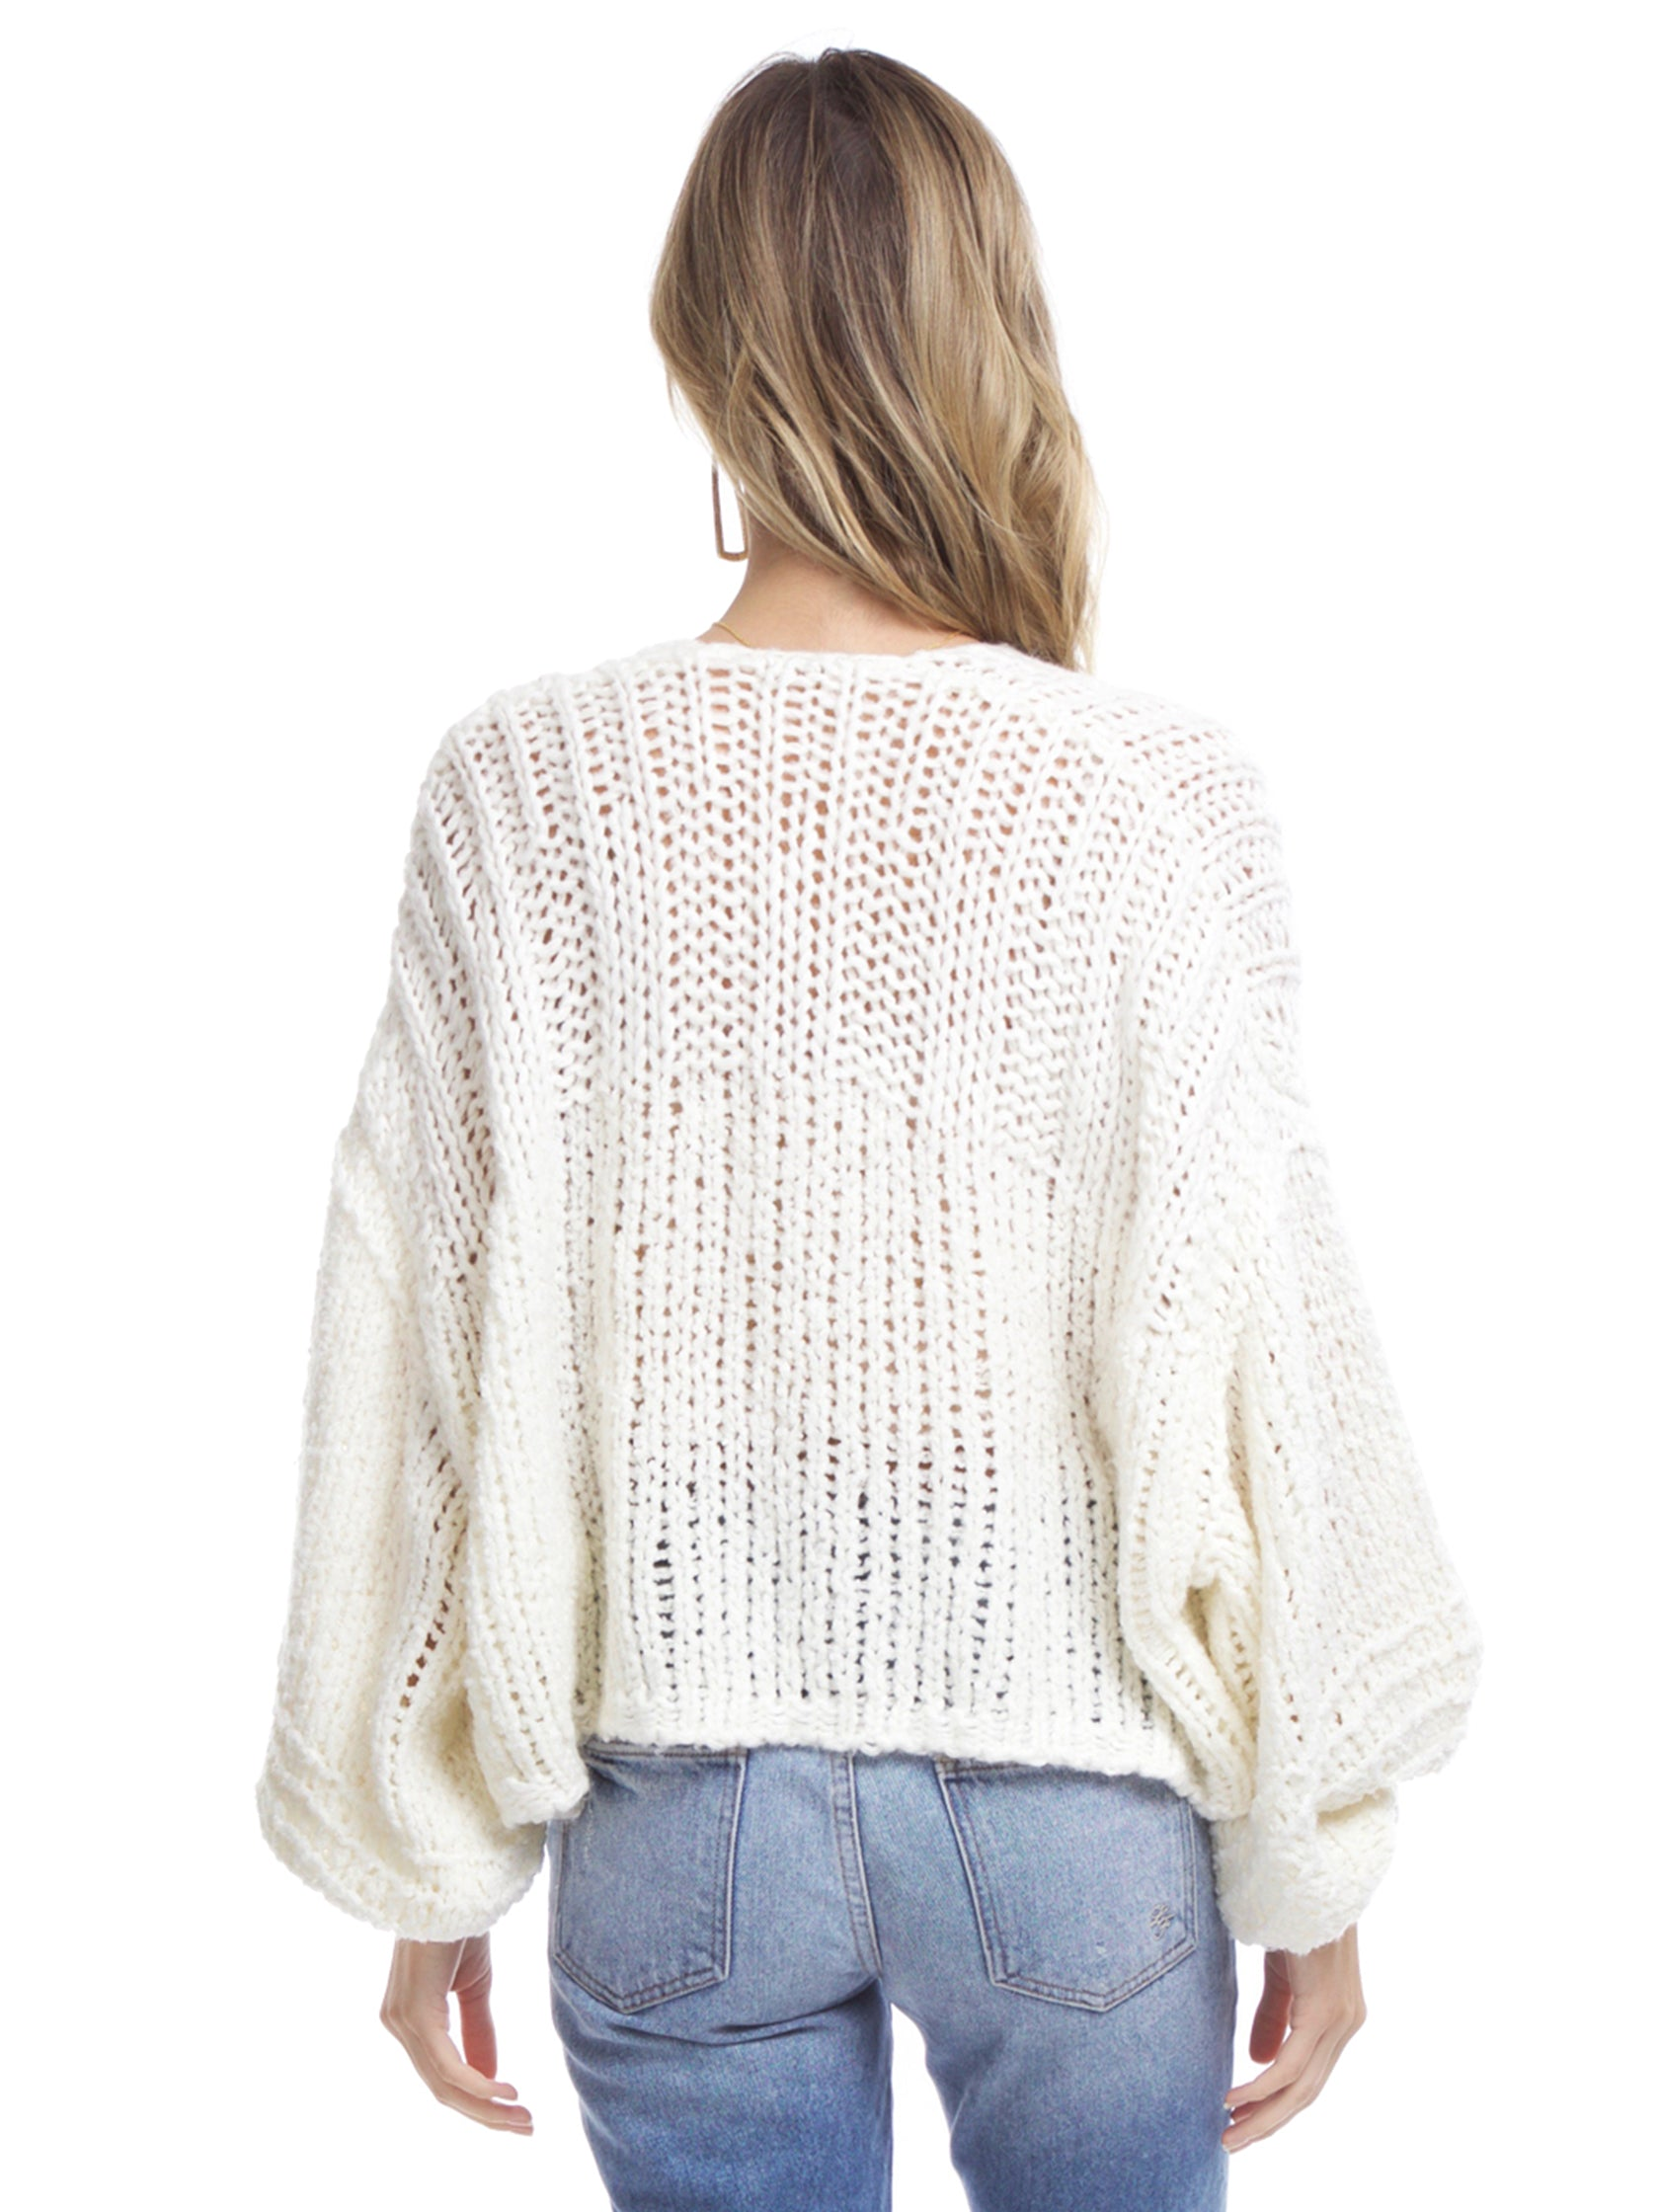 Women outfit in a cardigan rental from Free People called Chamomile Cardi